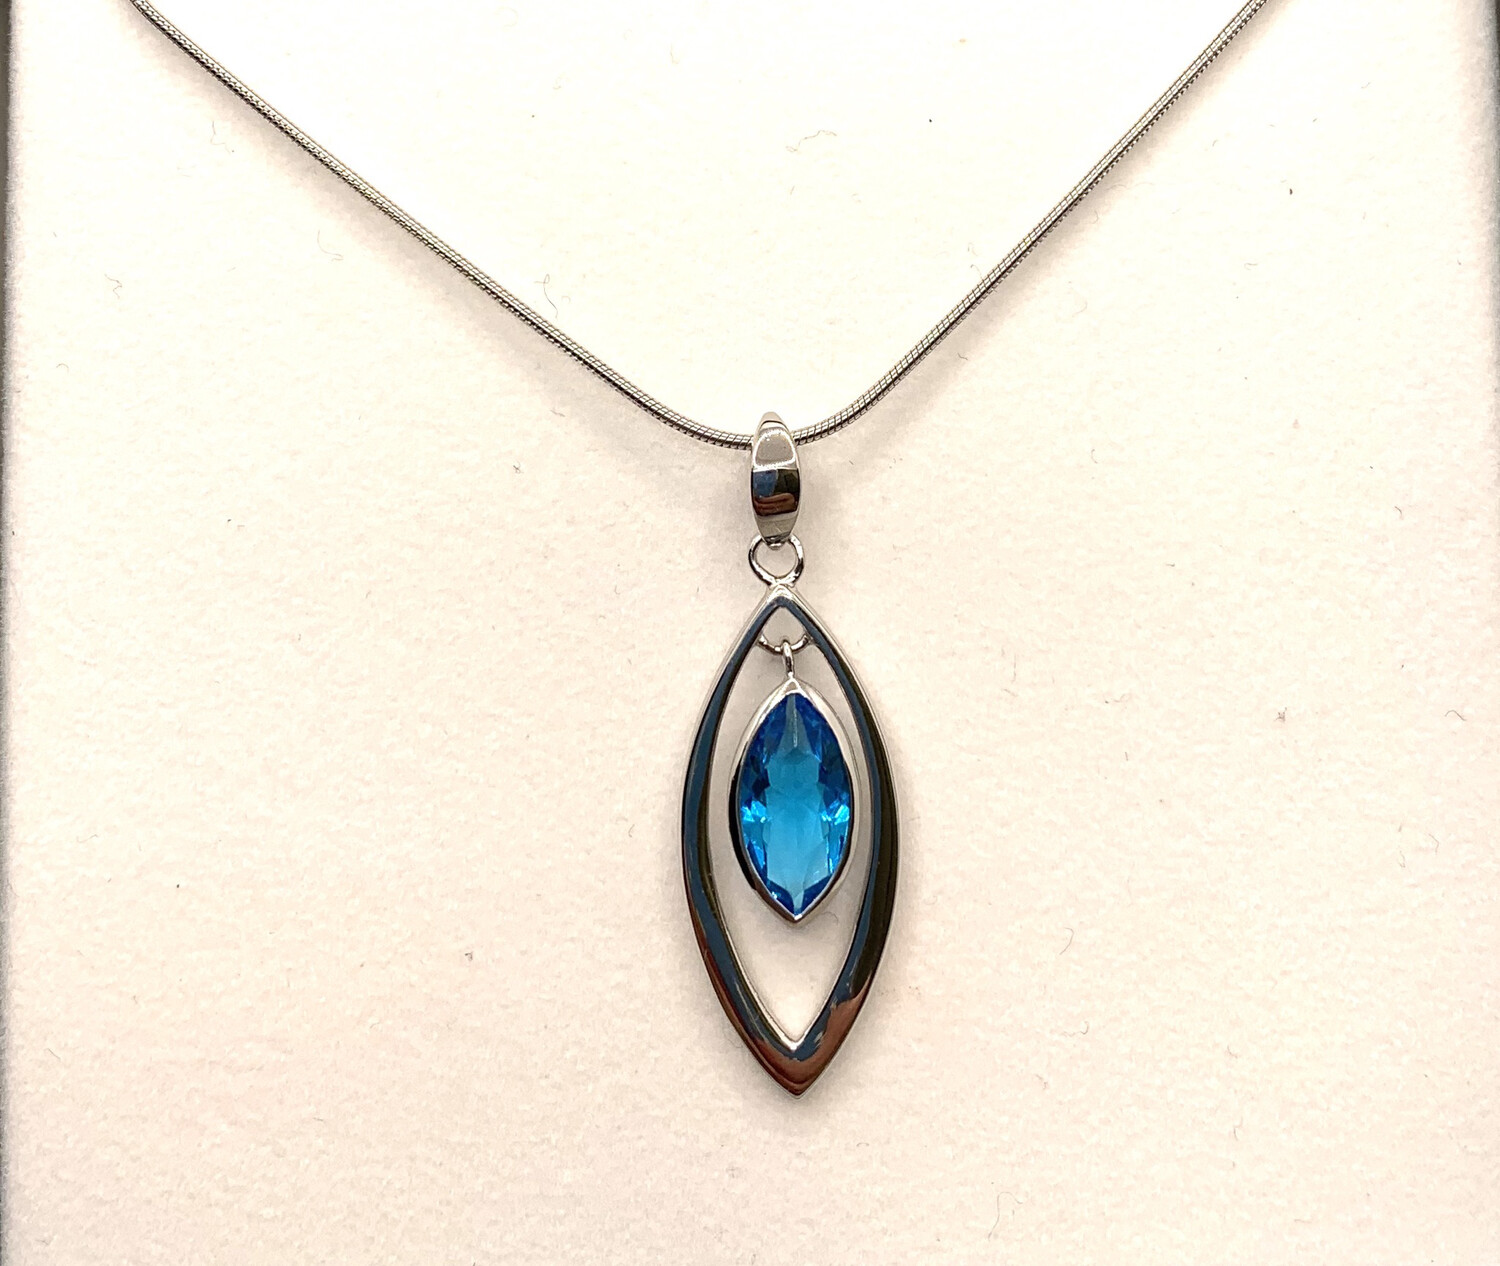 Synthetic Marquis Cut Birthstone Pendant